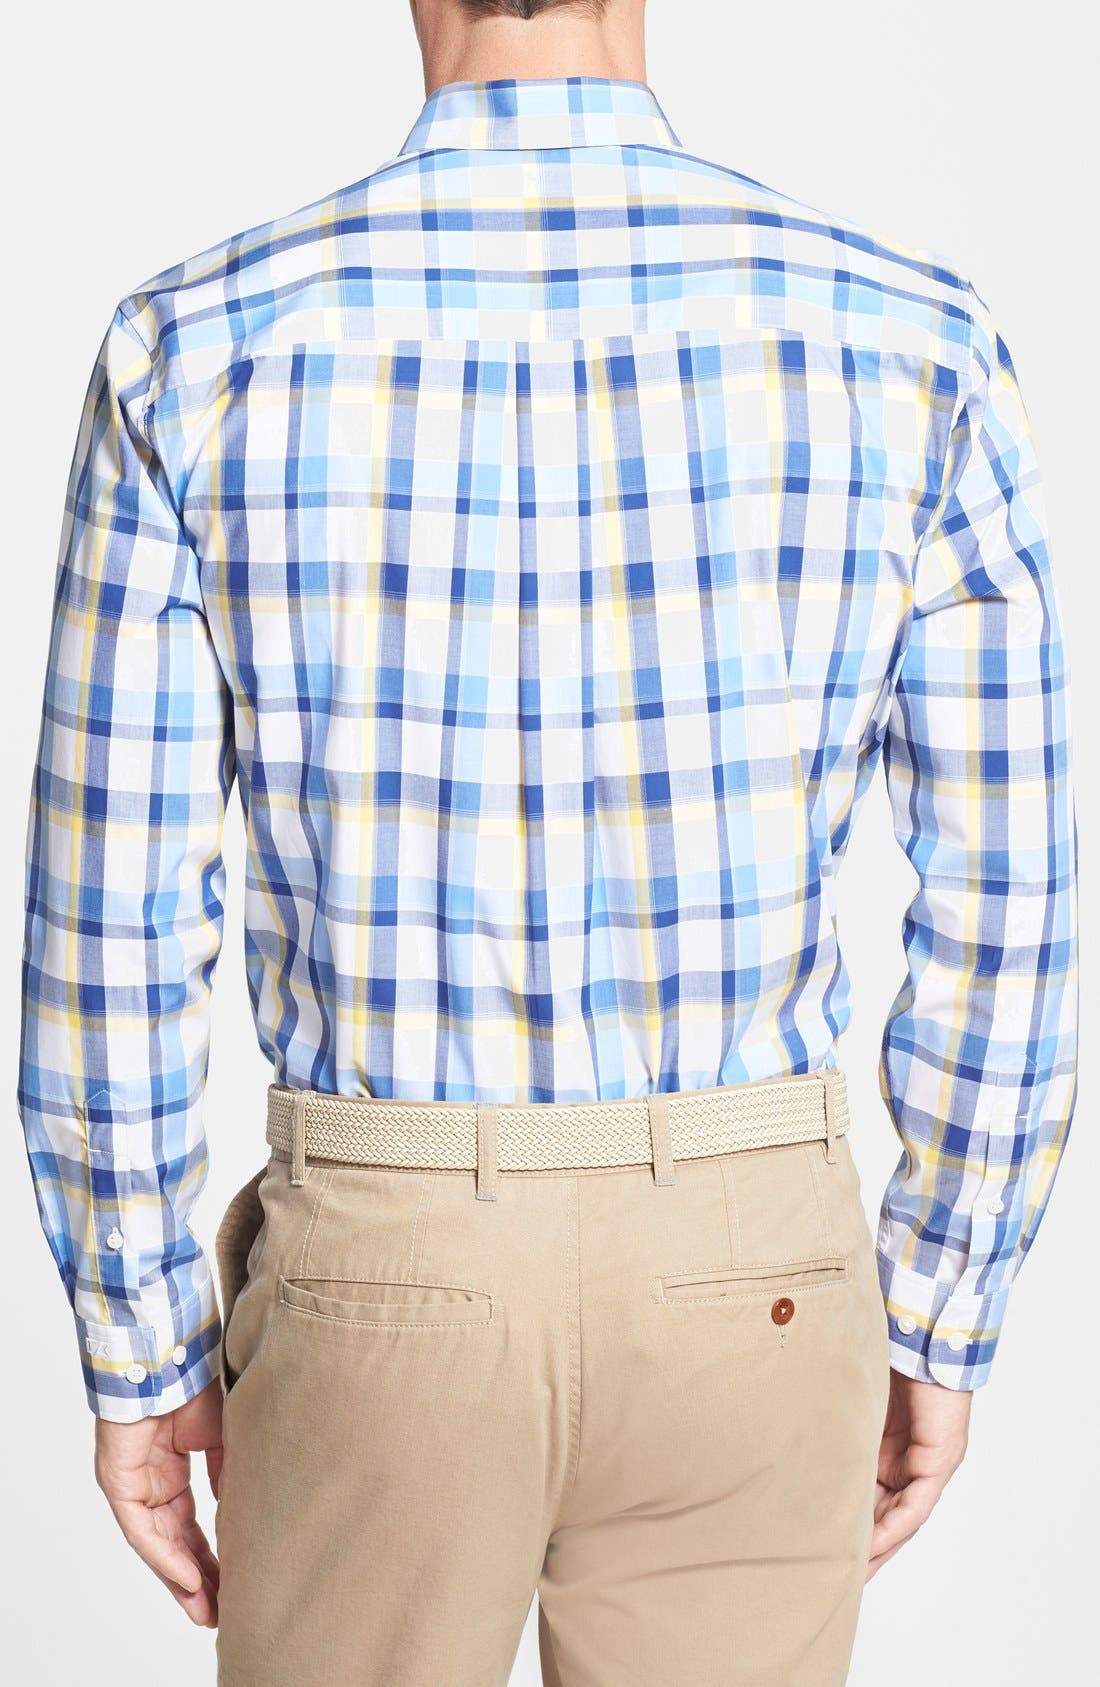 Alternate Image 2  - Cutter & Buck 'Pierce' Classic Fit Plaid Poplin Sport Shirt (Big & Tall)